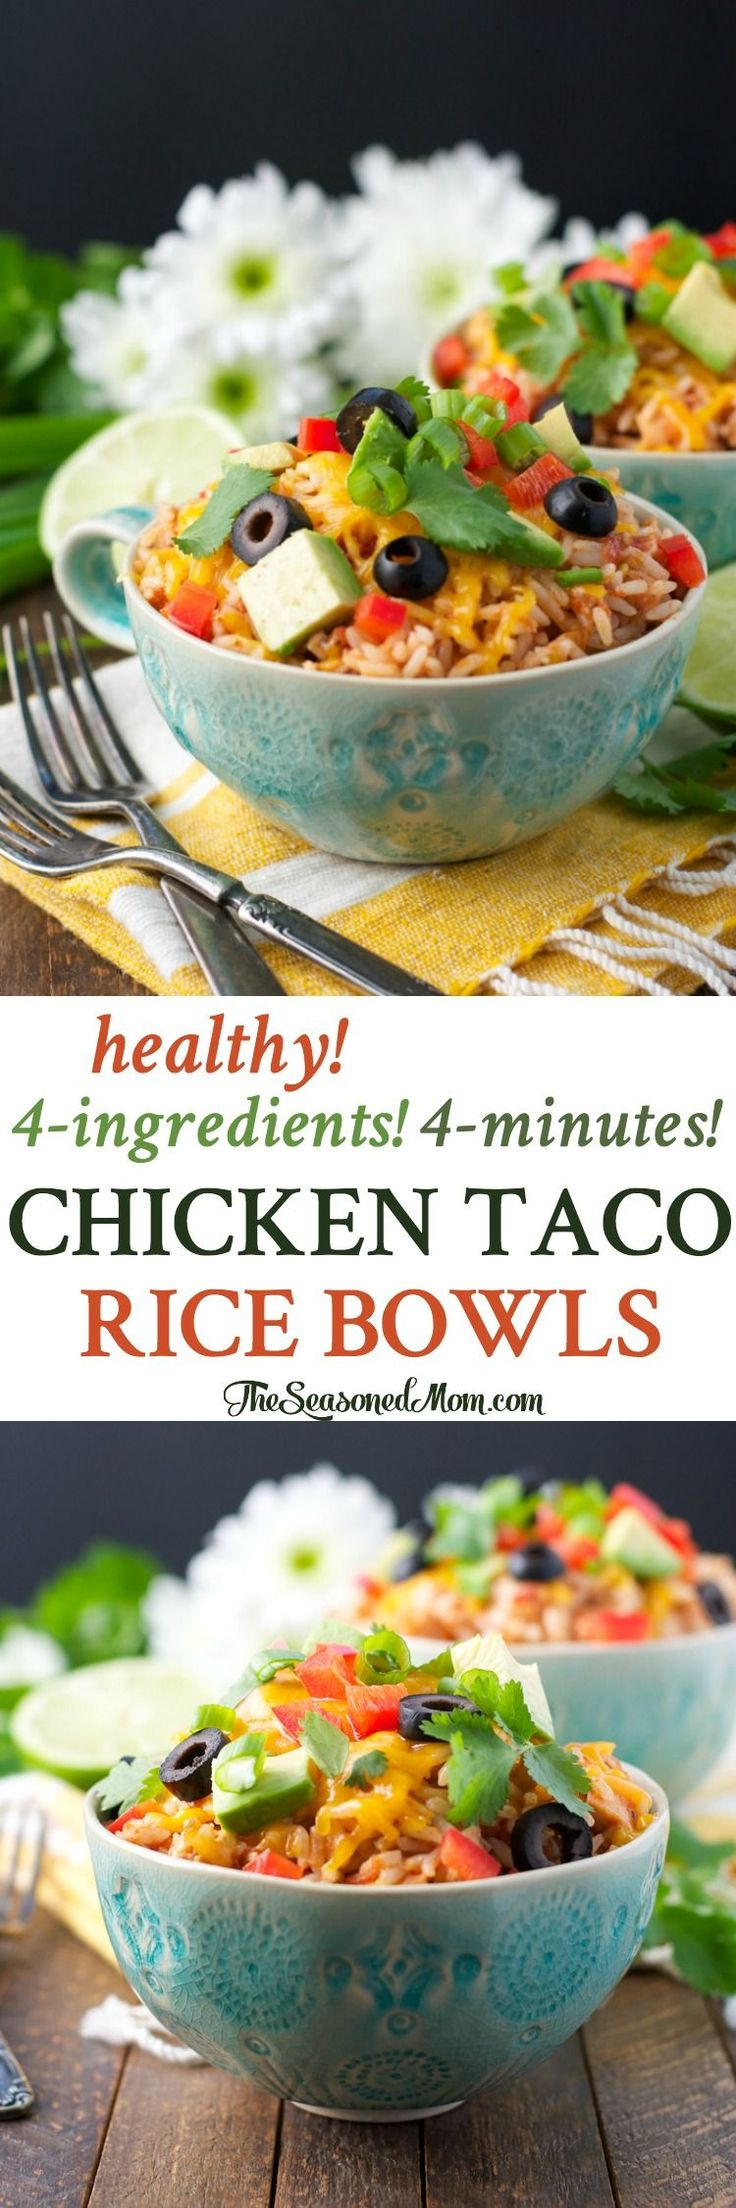 Healthy 4-Ingredient 4-Minute Chicken Taco Rice Bowls! Dinner Recipes | Dinner Ideas | Dinner | Dinner Recipes Easy | Lunch Ideas